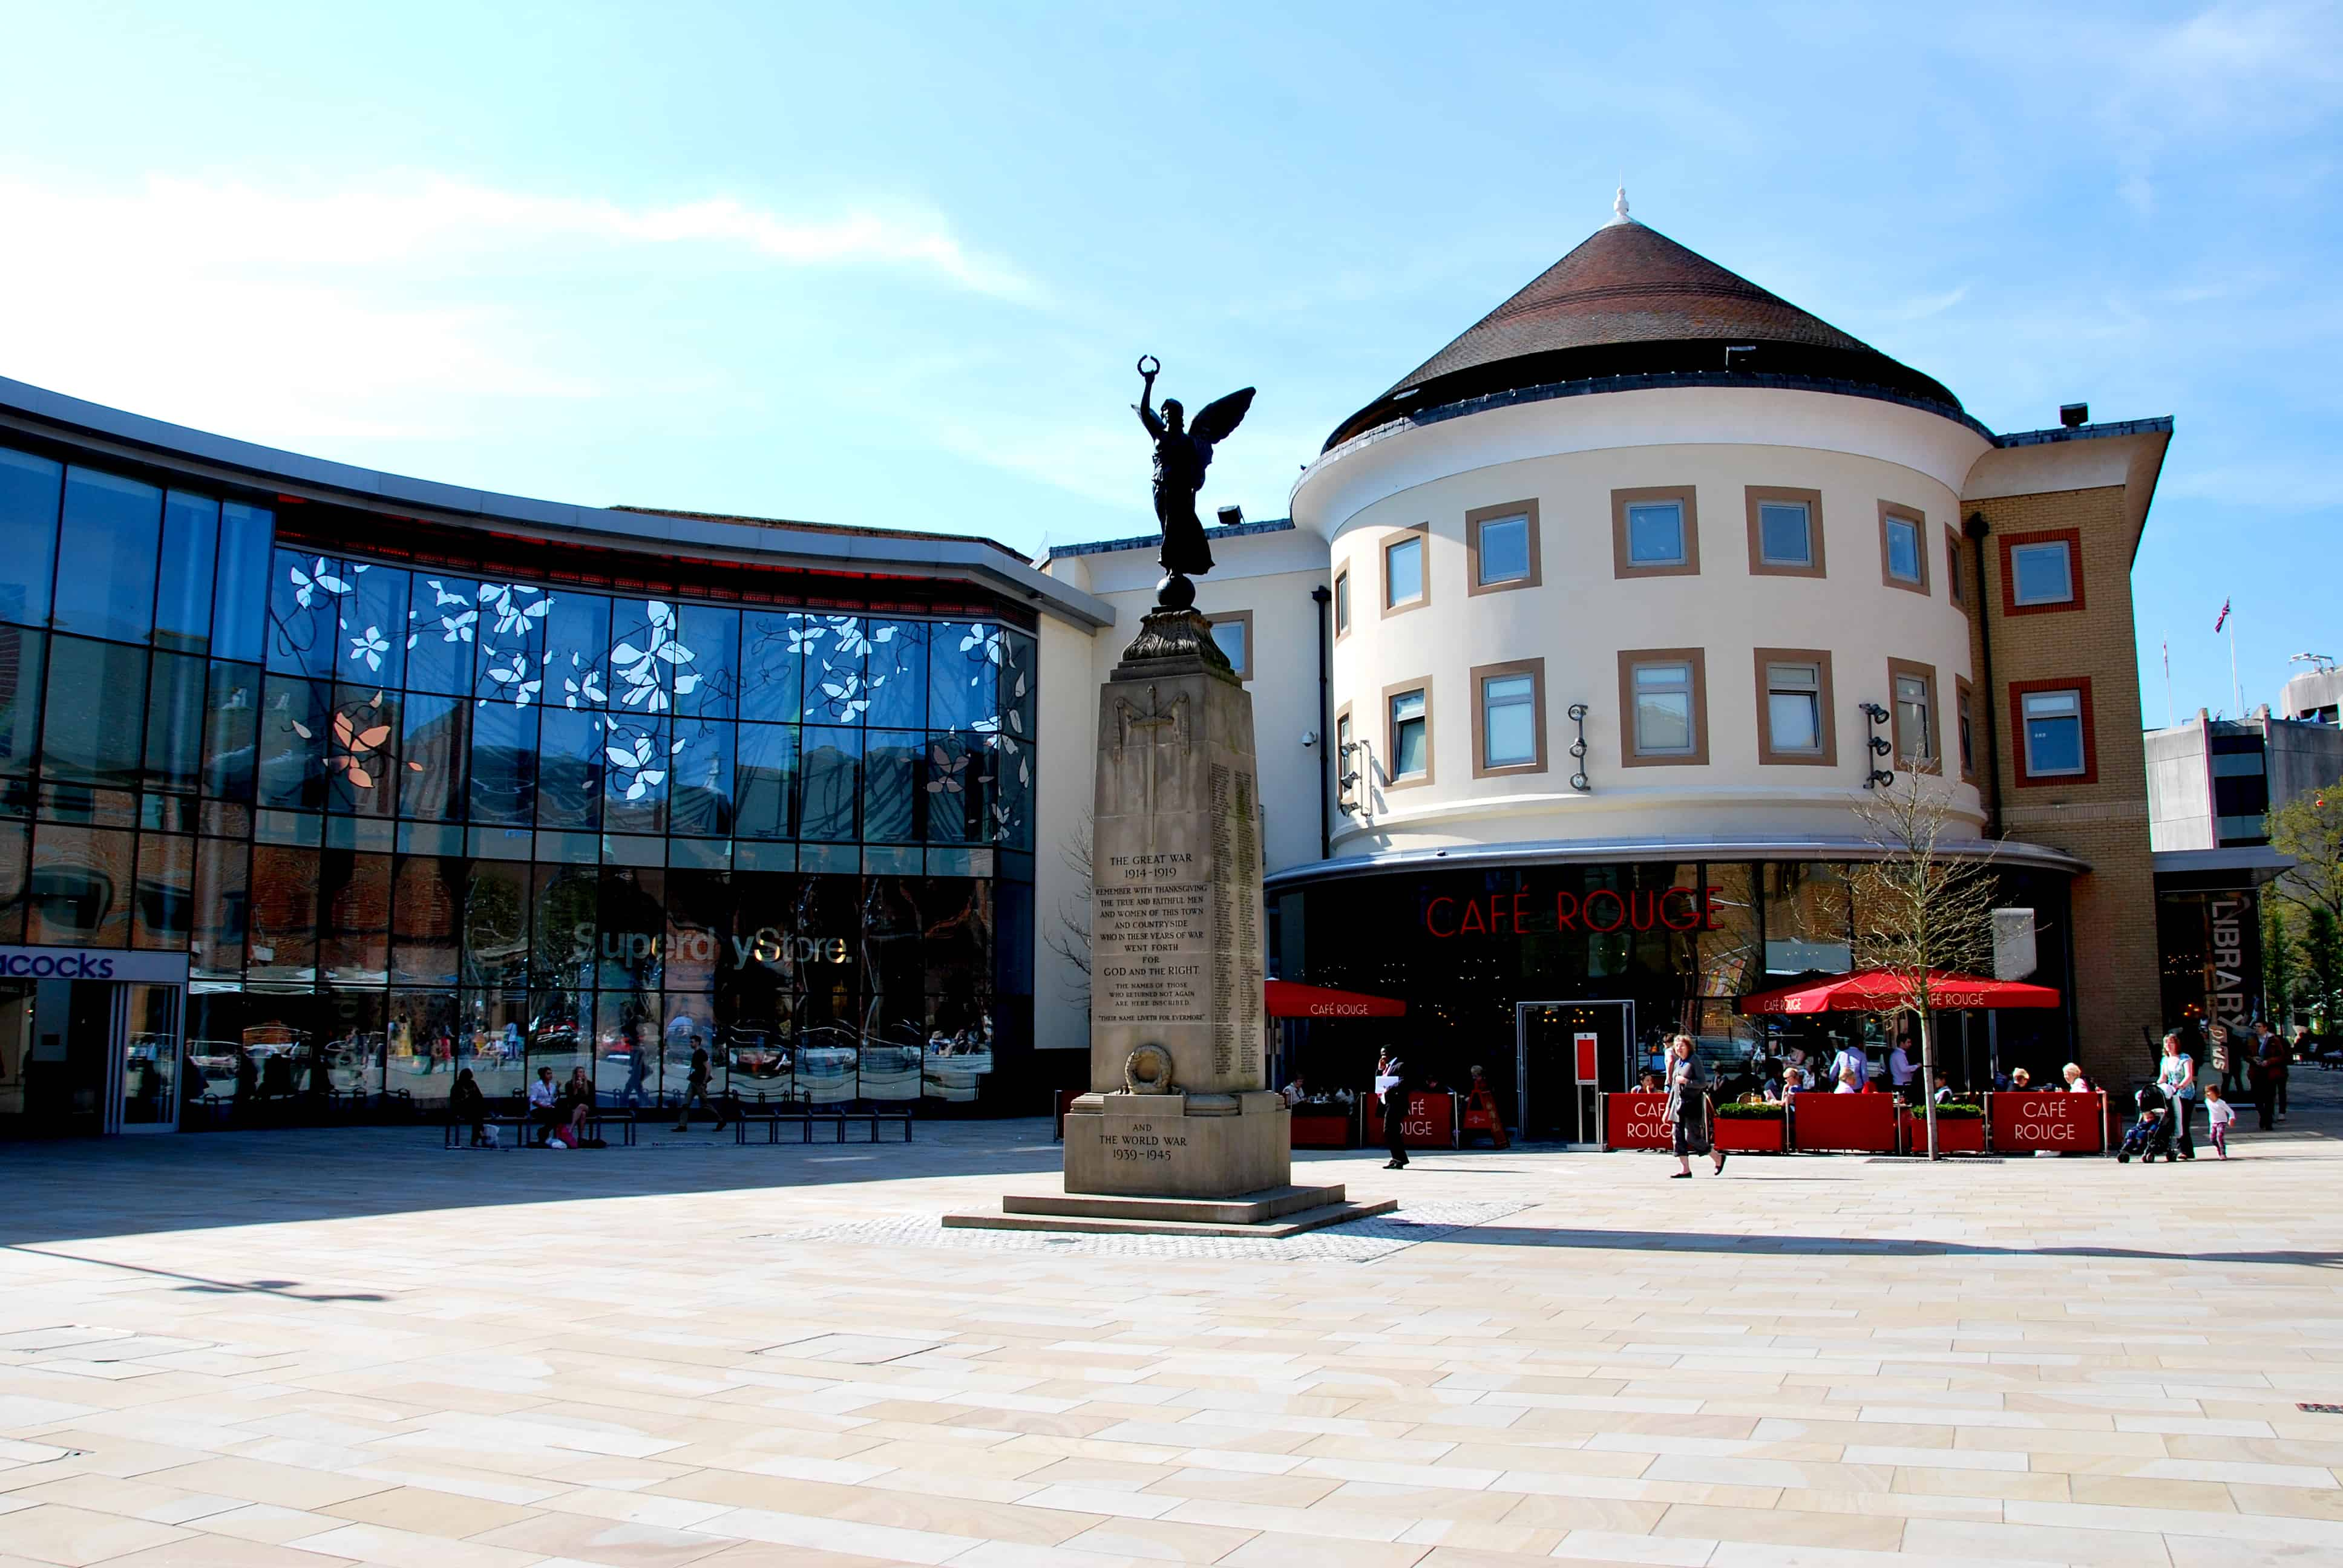 The_Great_War_monument,_Jubilee_Square,_Woking_England